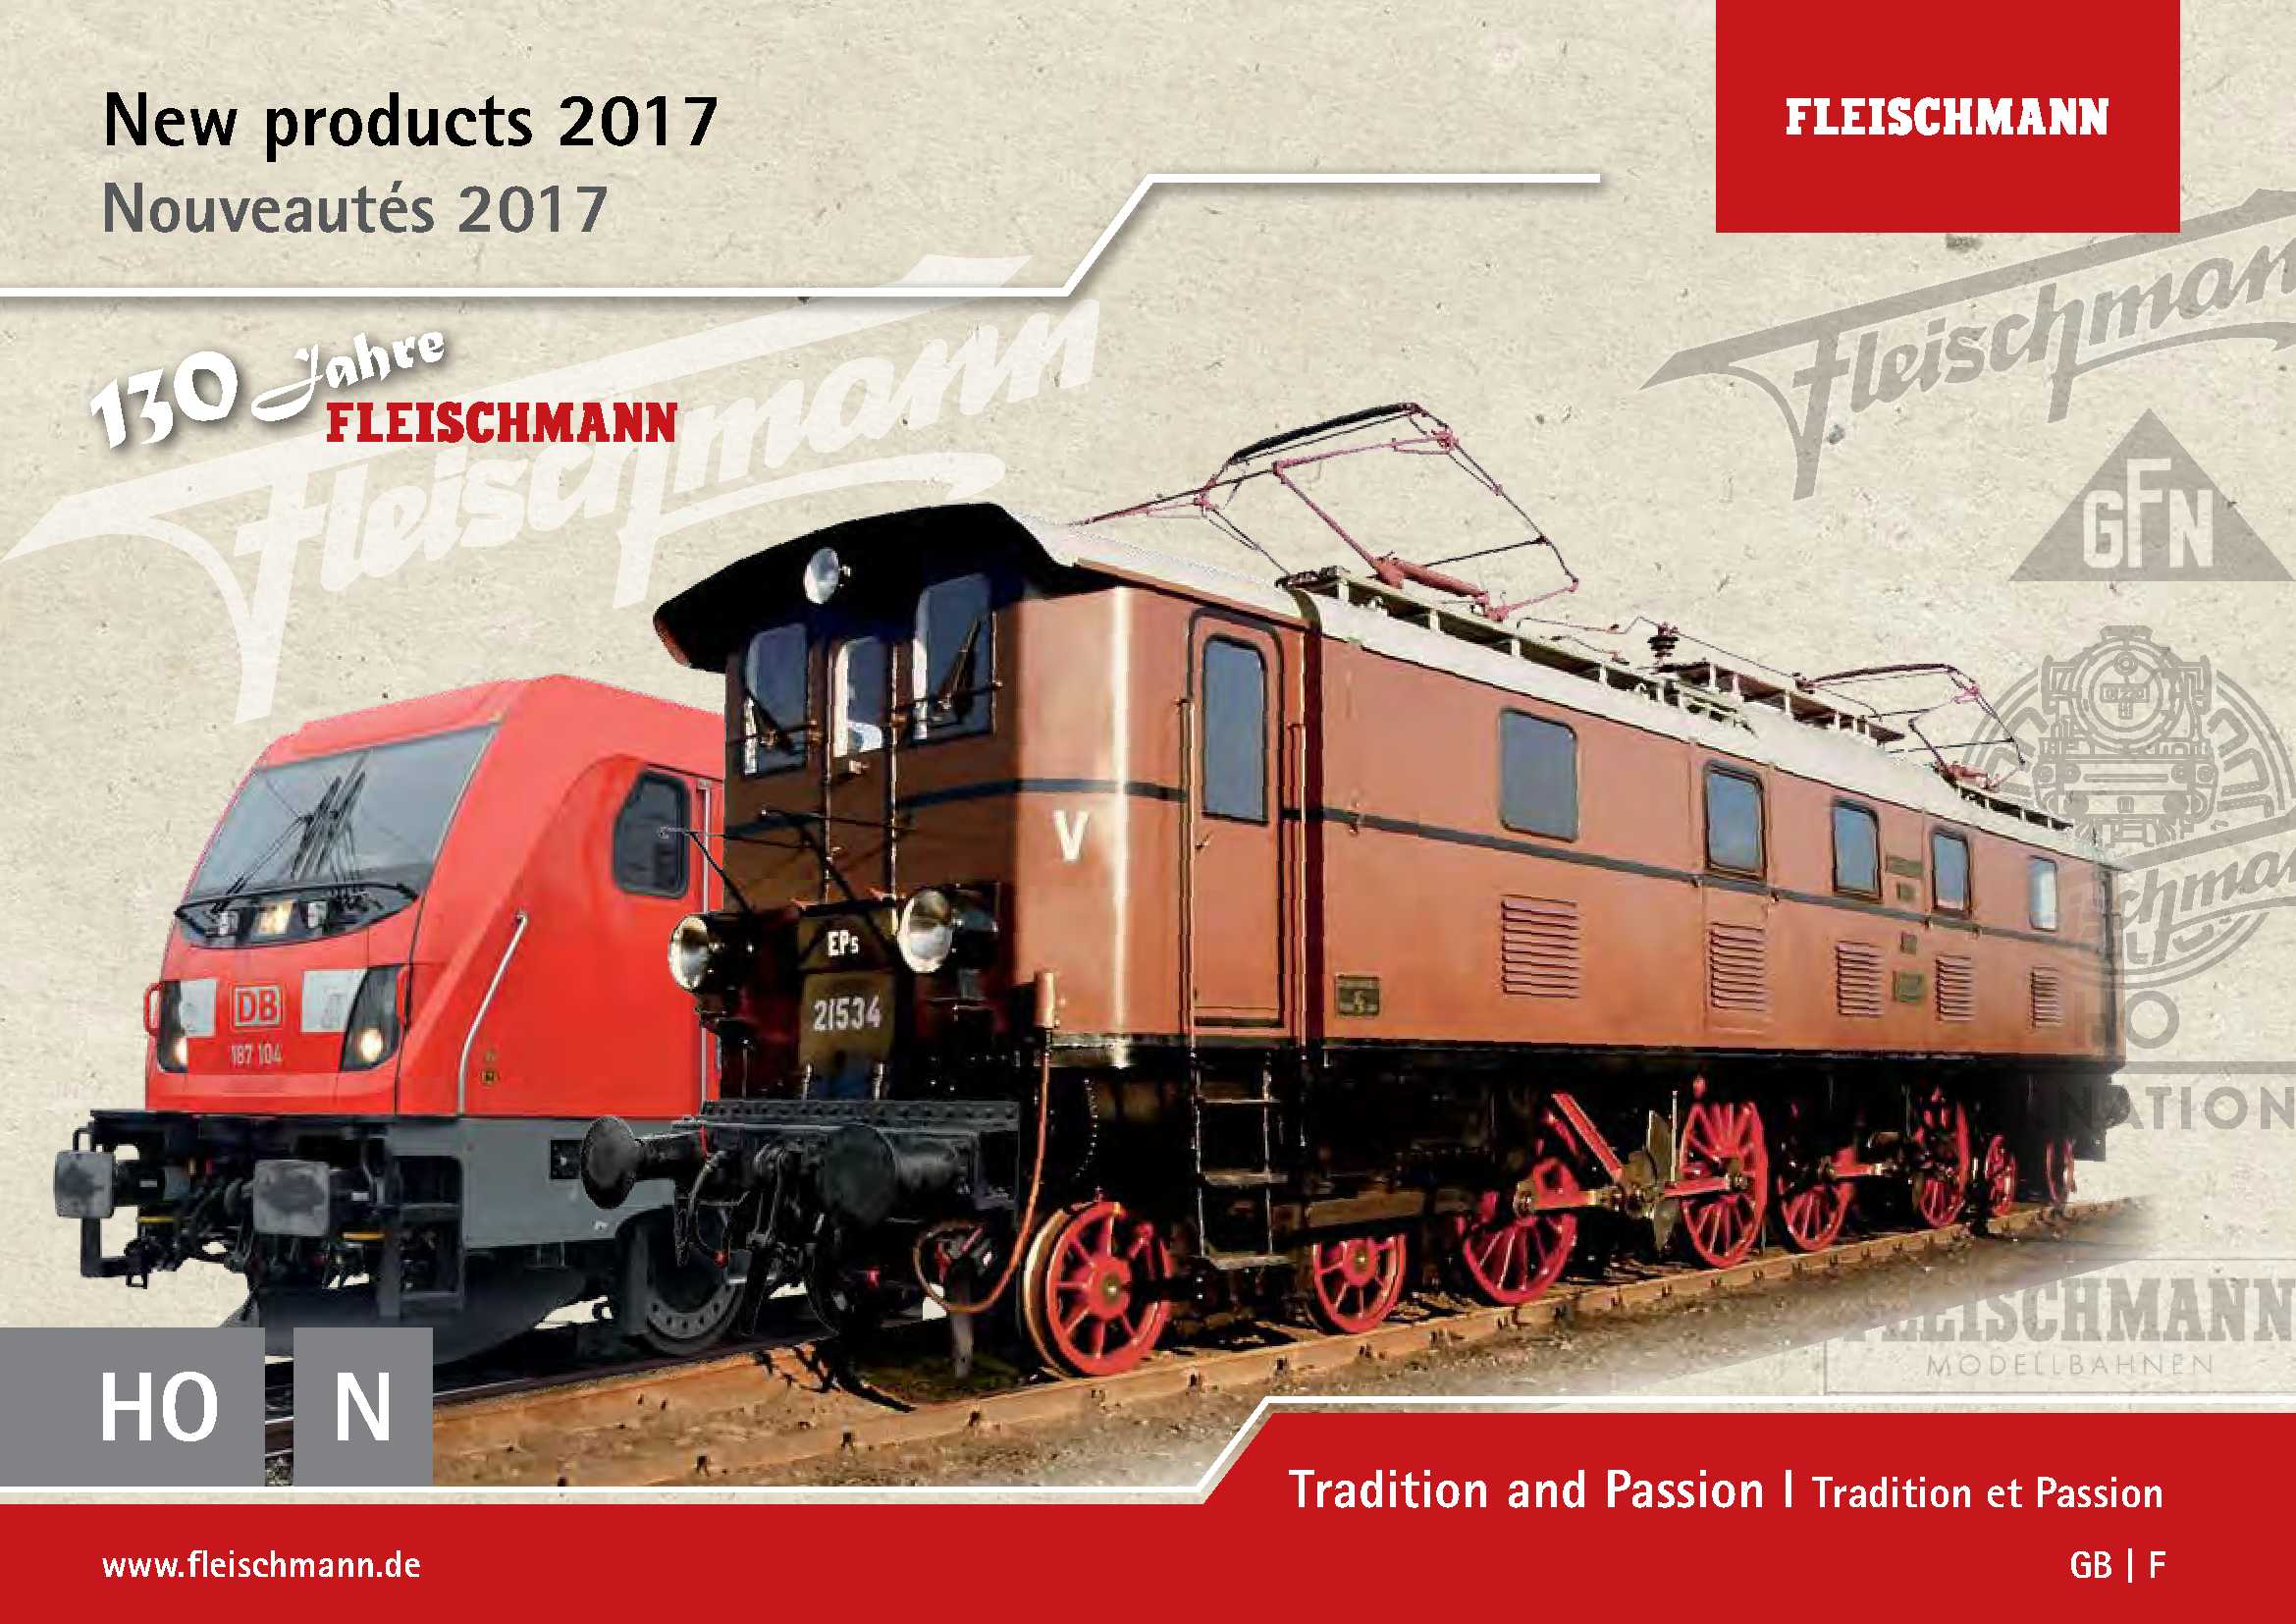 Fleischmann News 2017 for HO scale